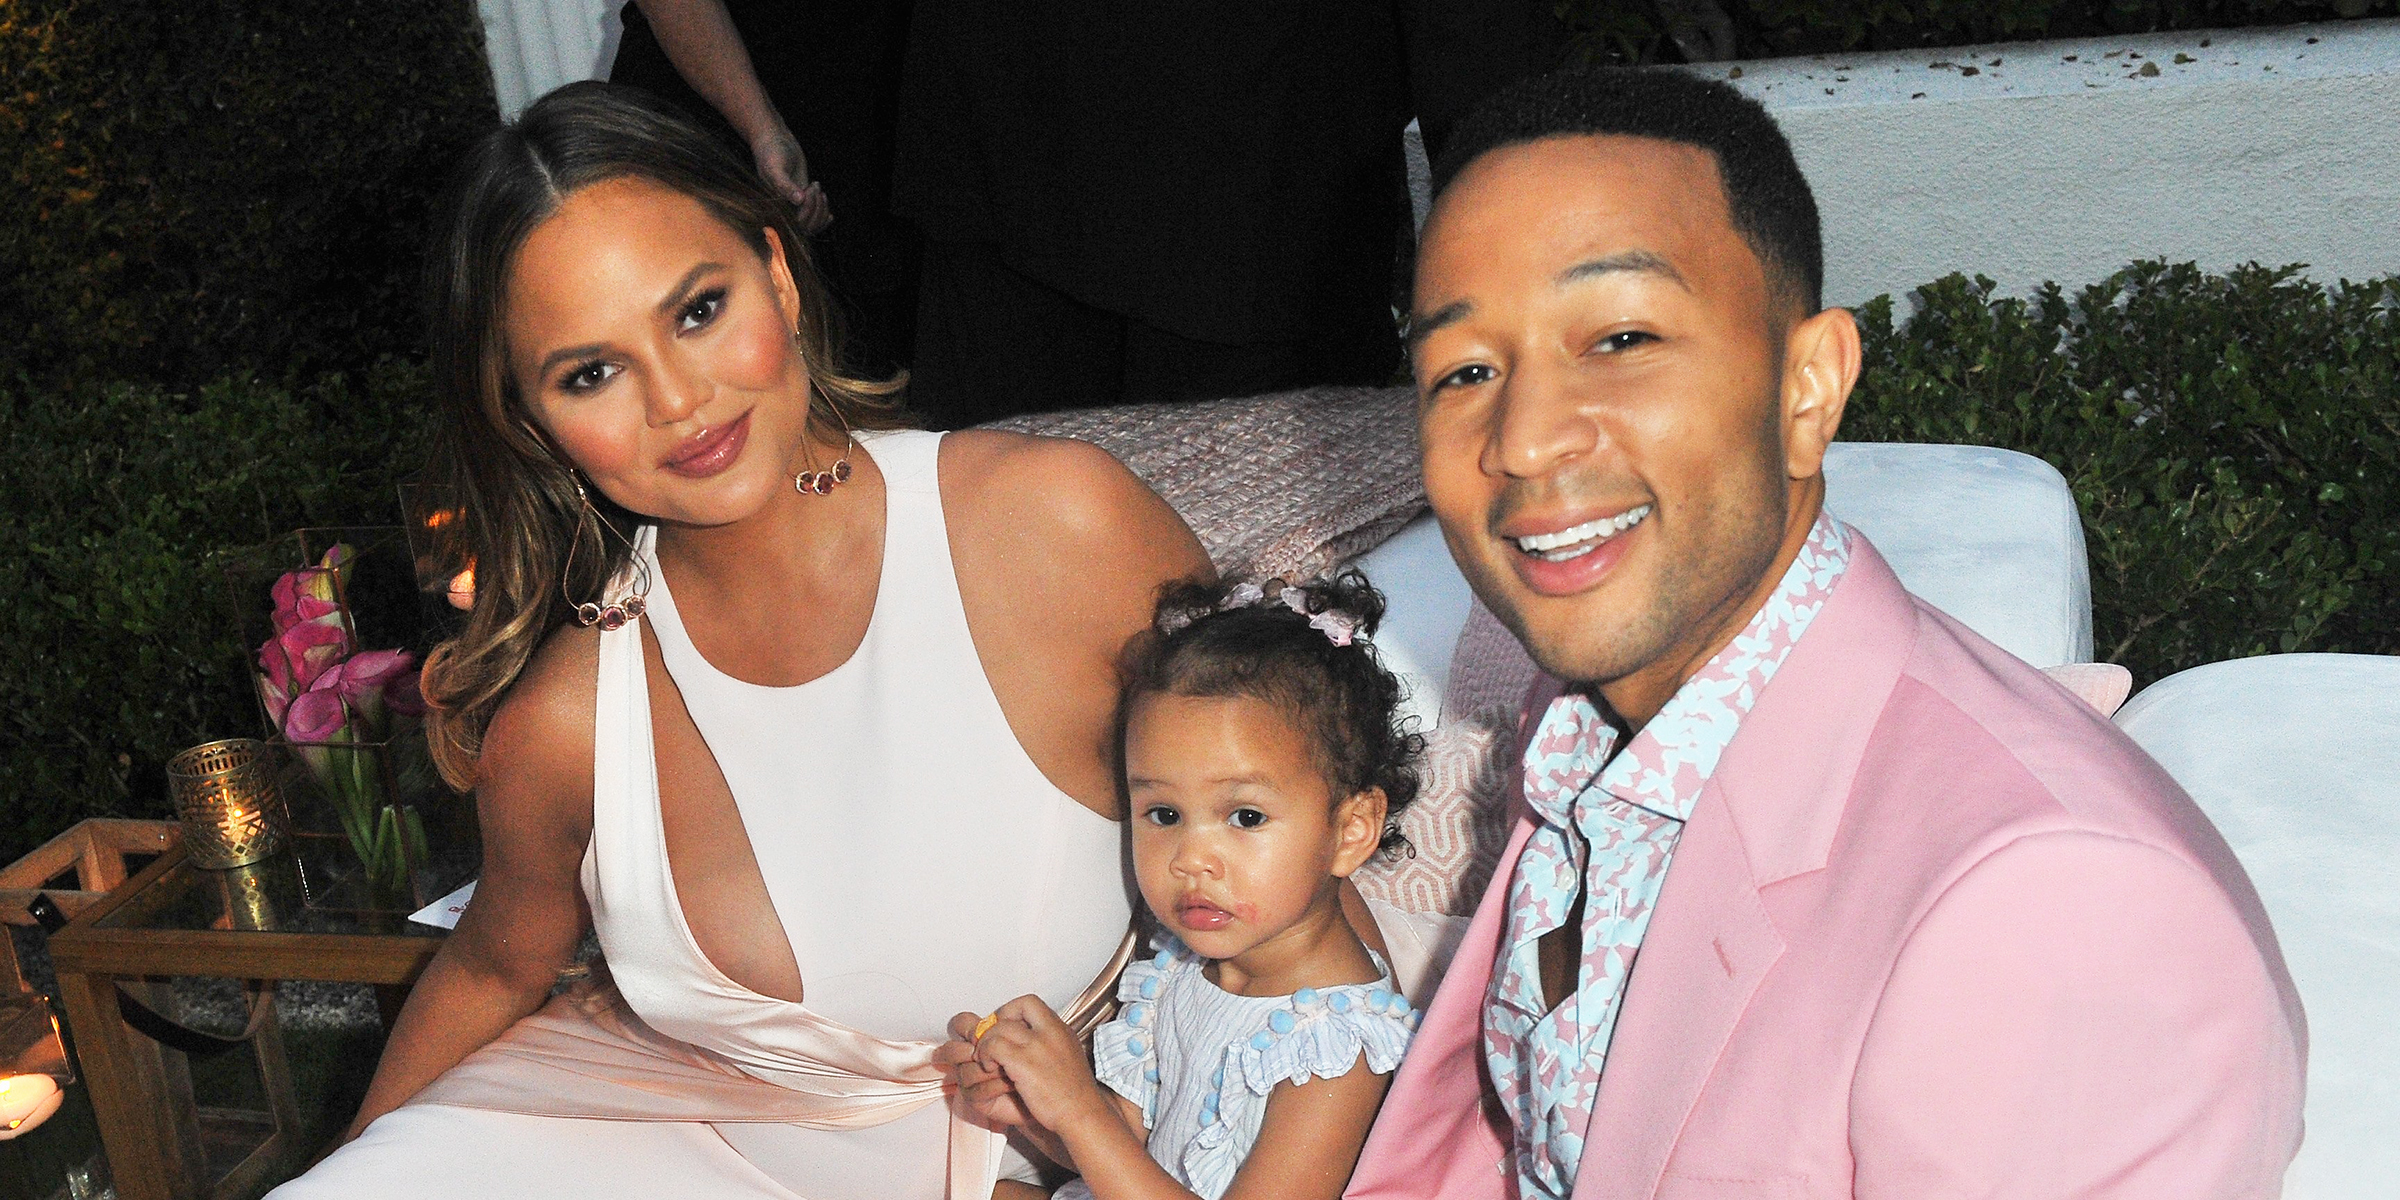 Chrissy Teigen and John Legend's daughter describes 1st crush in adorable video